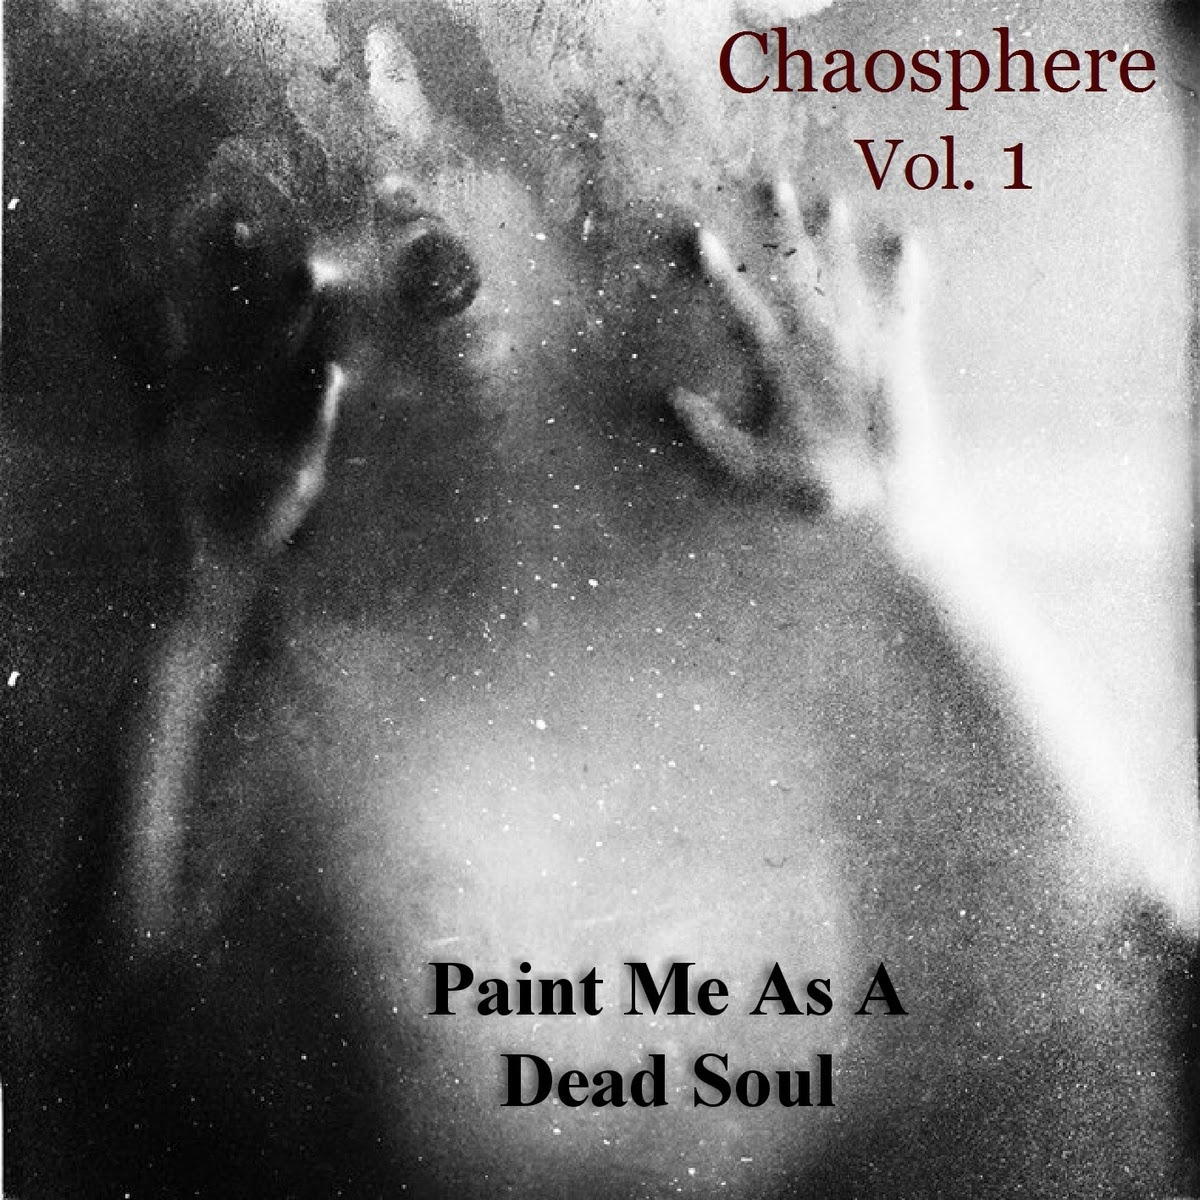 Chaosphere Vol.1 compilation